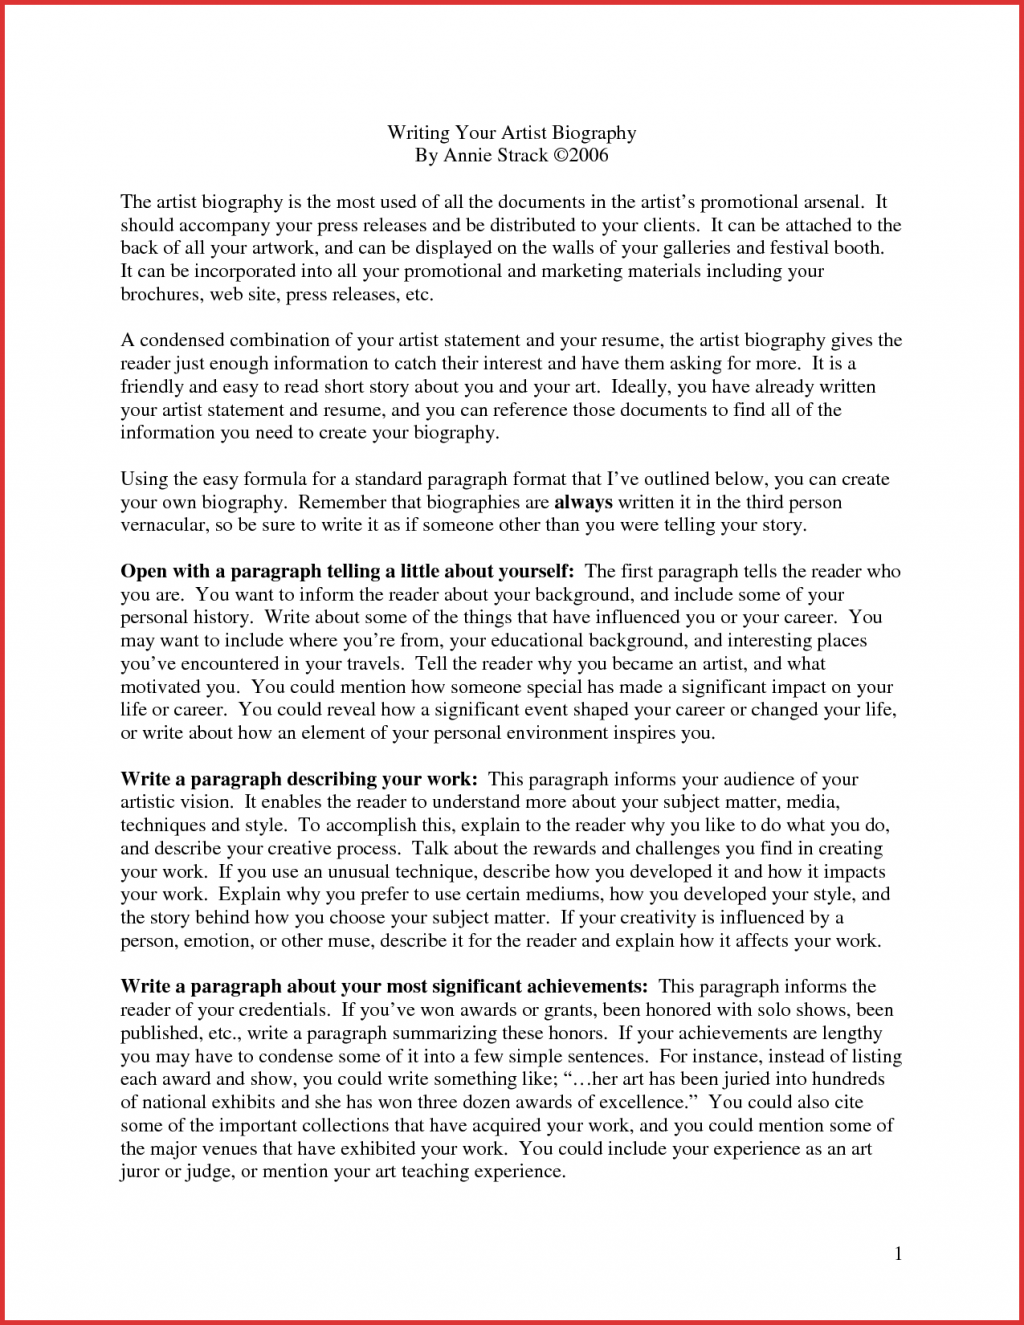 025 Example Of Biography Essay Person Resume Third Unitedijawstates Com Best Solutions Should Written In First Or Unique Examples 1024x1325 Unforgettable Sample About Myself Elementary Self Full